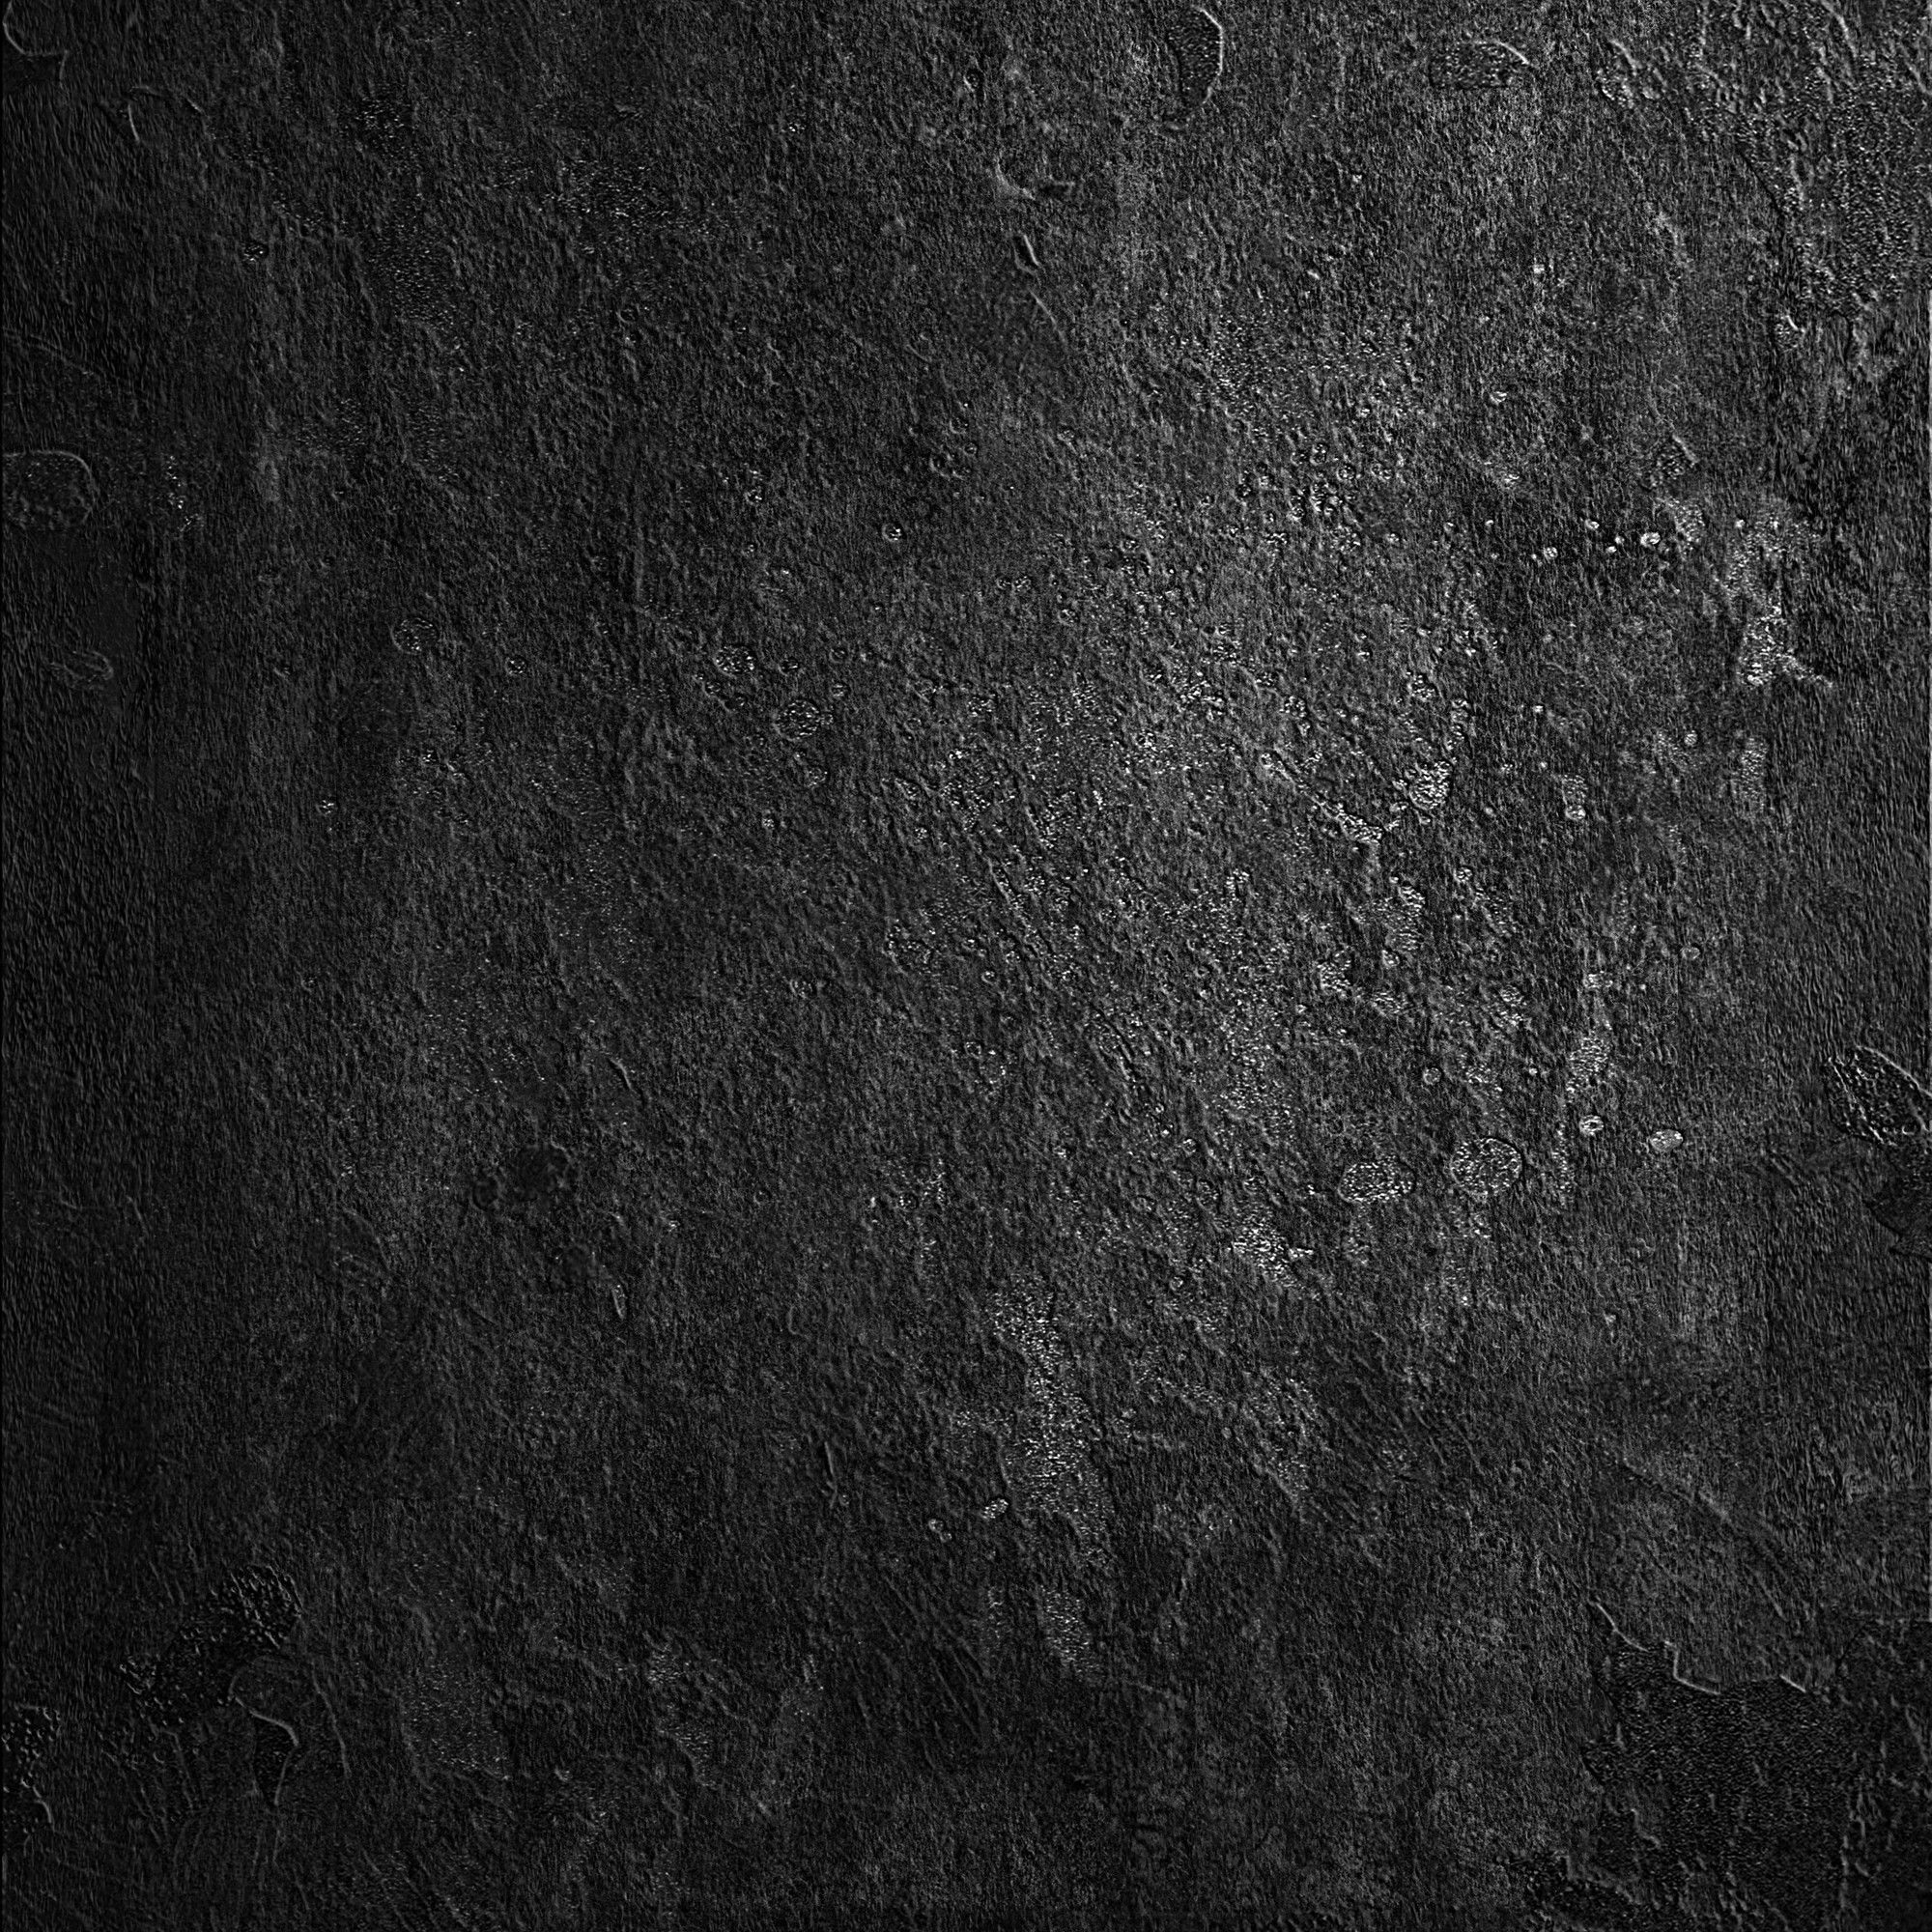 Black Metal Texture Design Inspiration 23904 Floor Design. Black Metal Texture Design Inspiration 23904 Floor Design